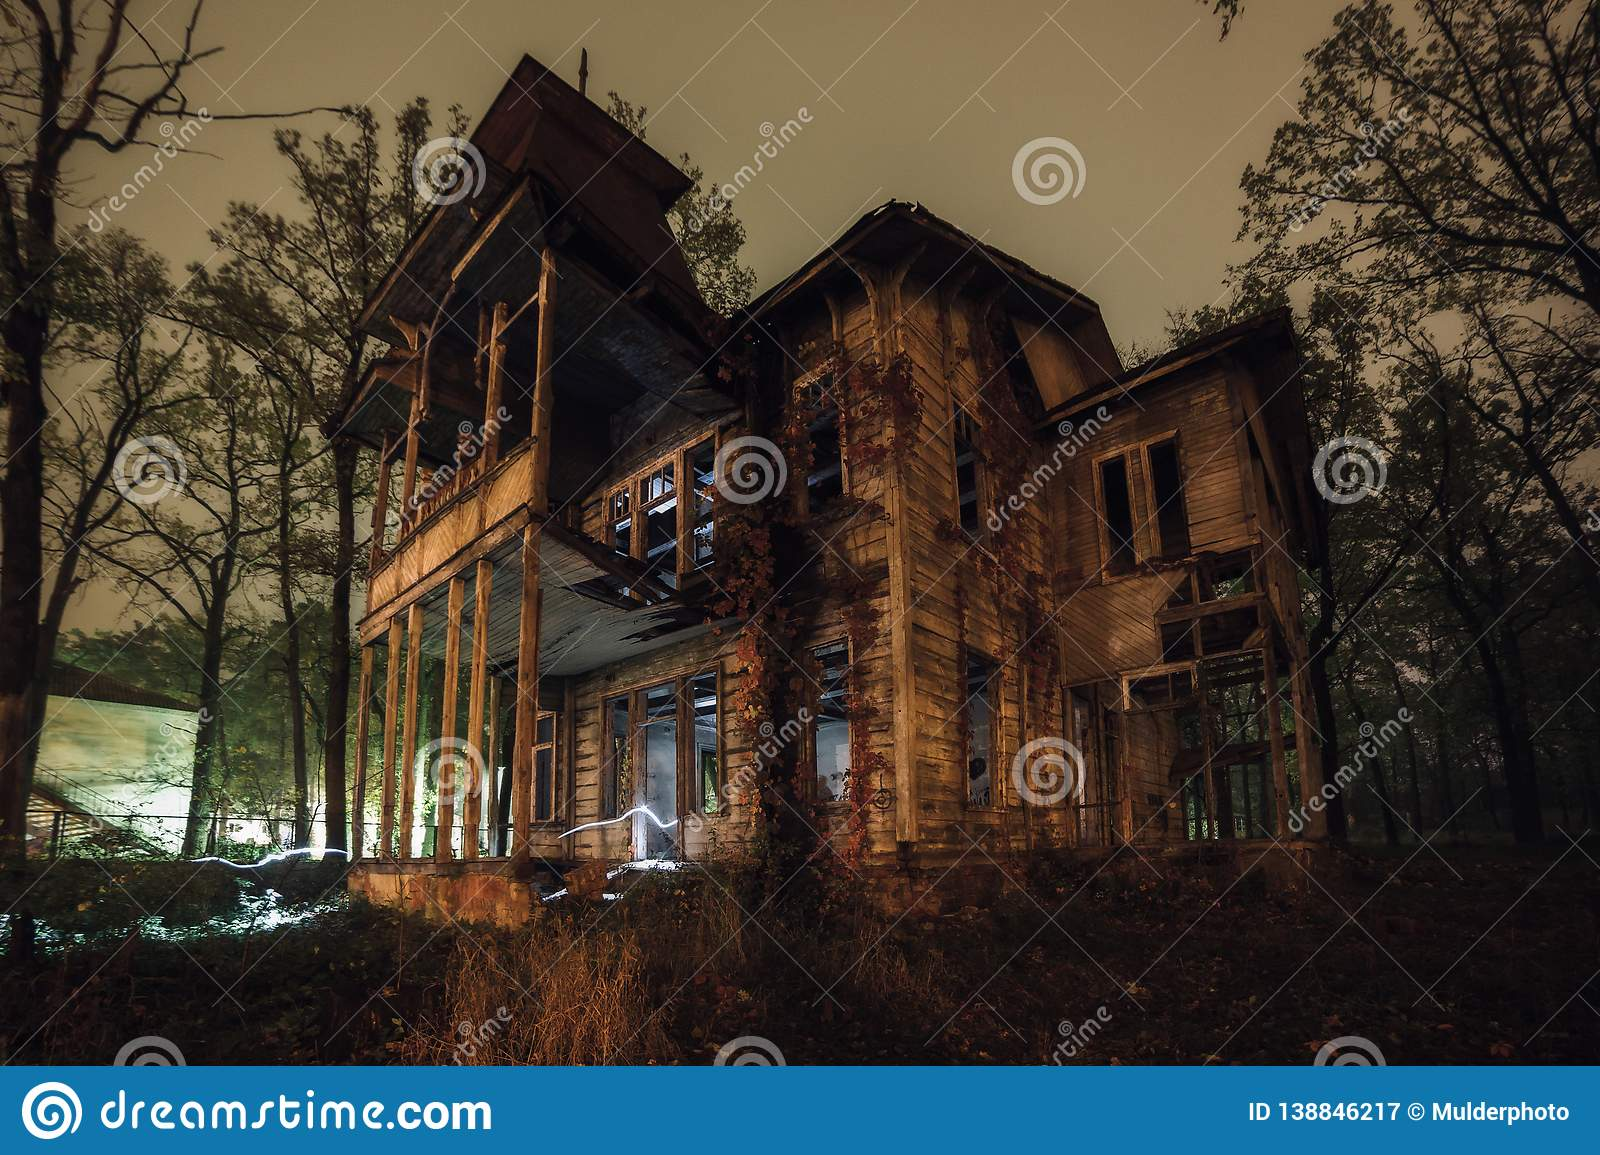 Old Creepy Wooden Abandoned Haunted Ruined Mansion At Night Stock Image Image Of Ghost Detective 138846217